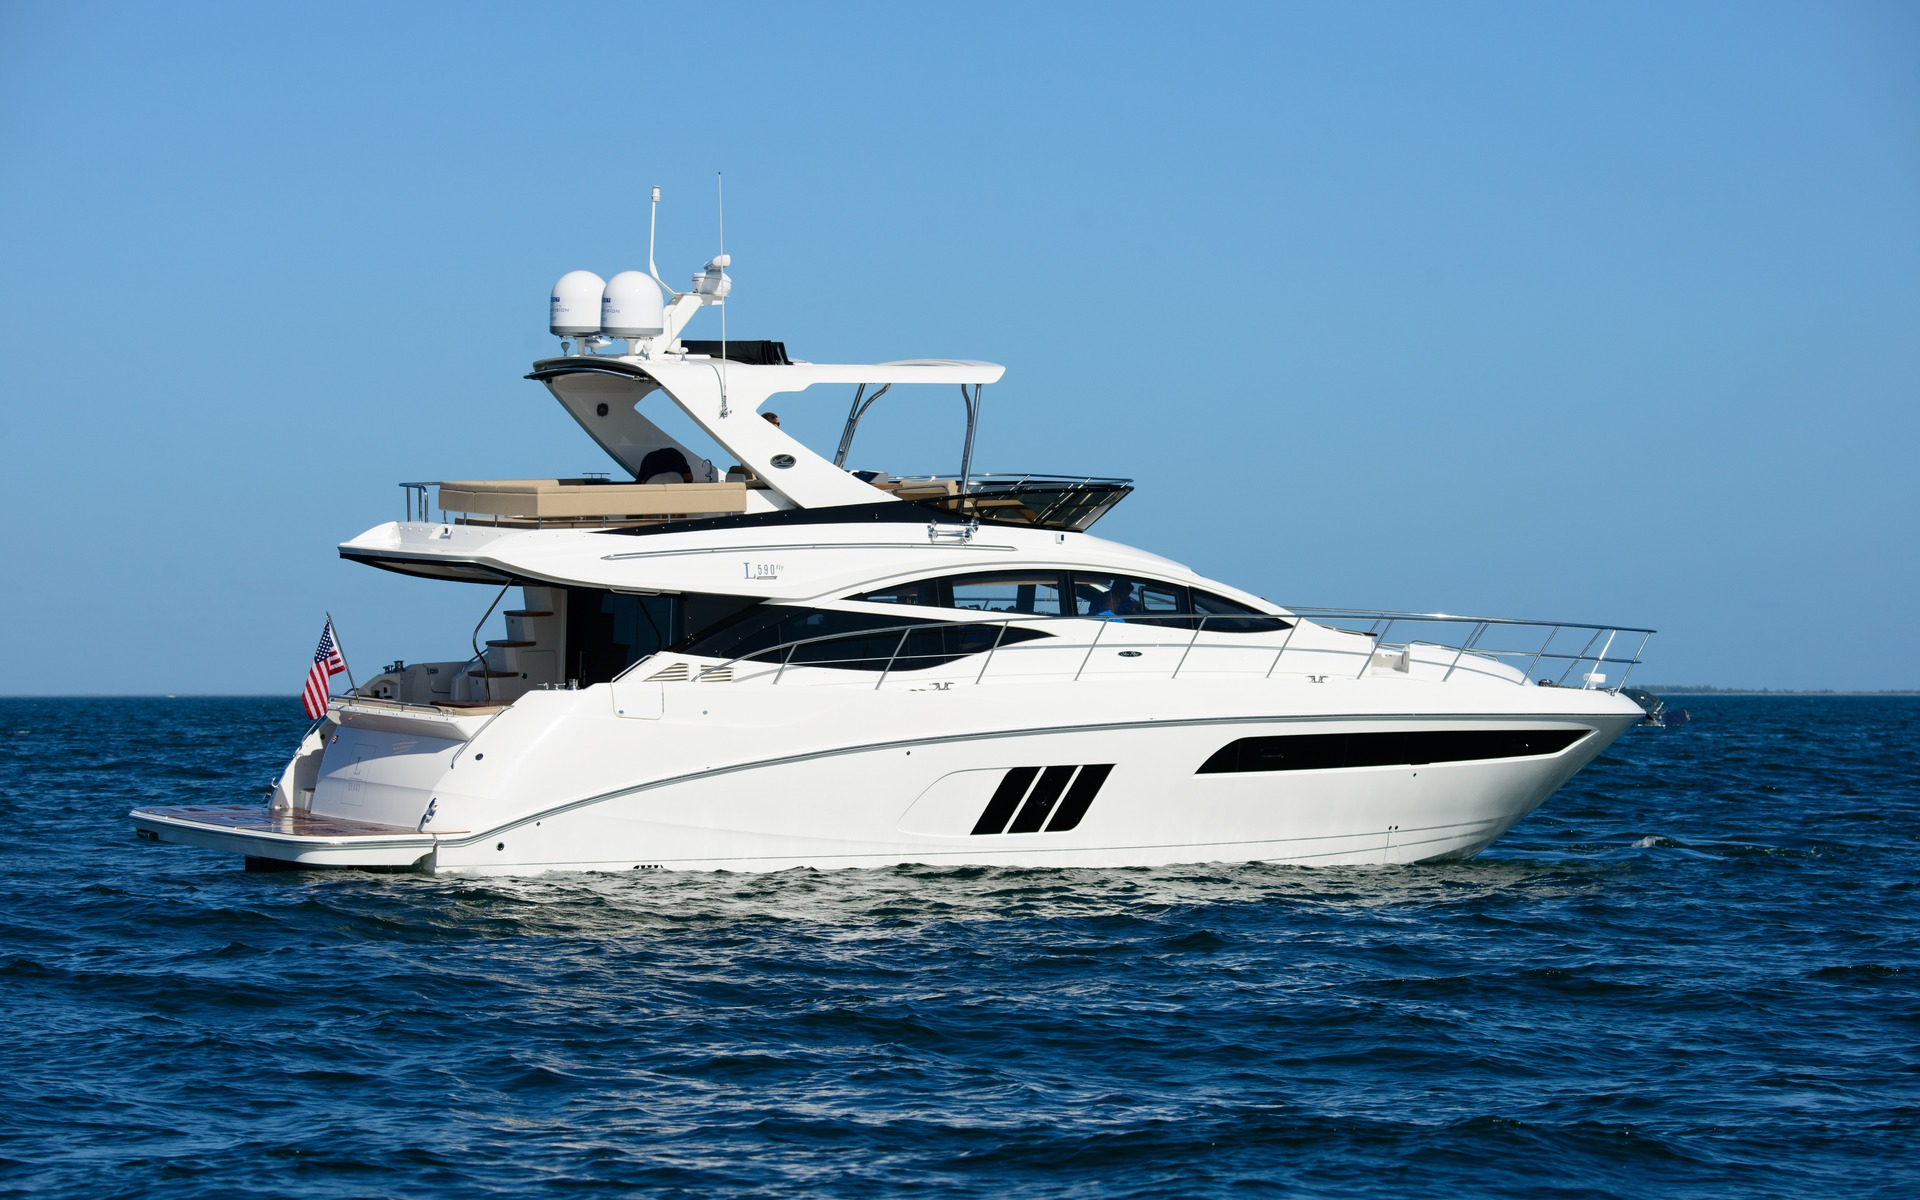 2015 Sea Ray L590 FLY - Tests, news, photos, videos and